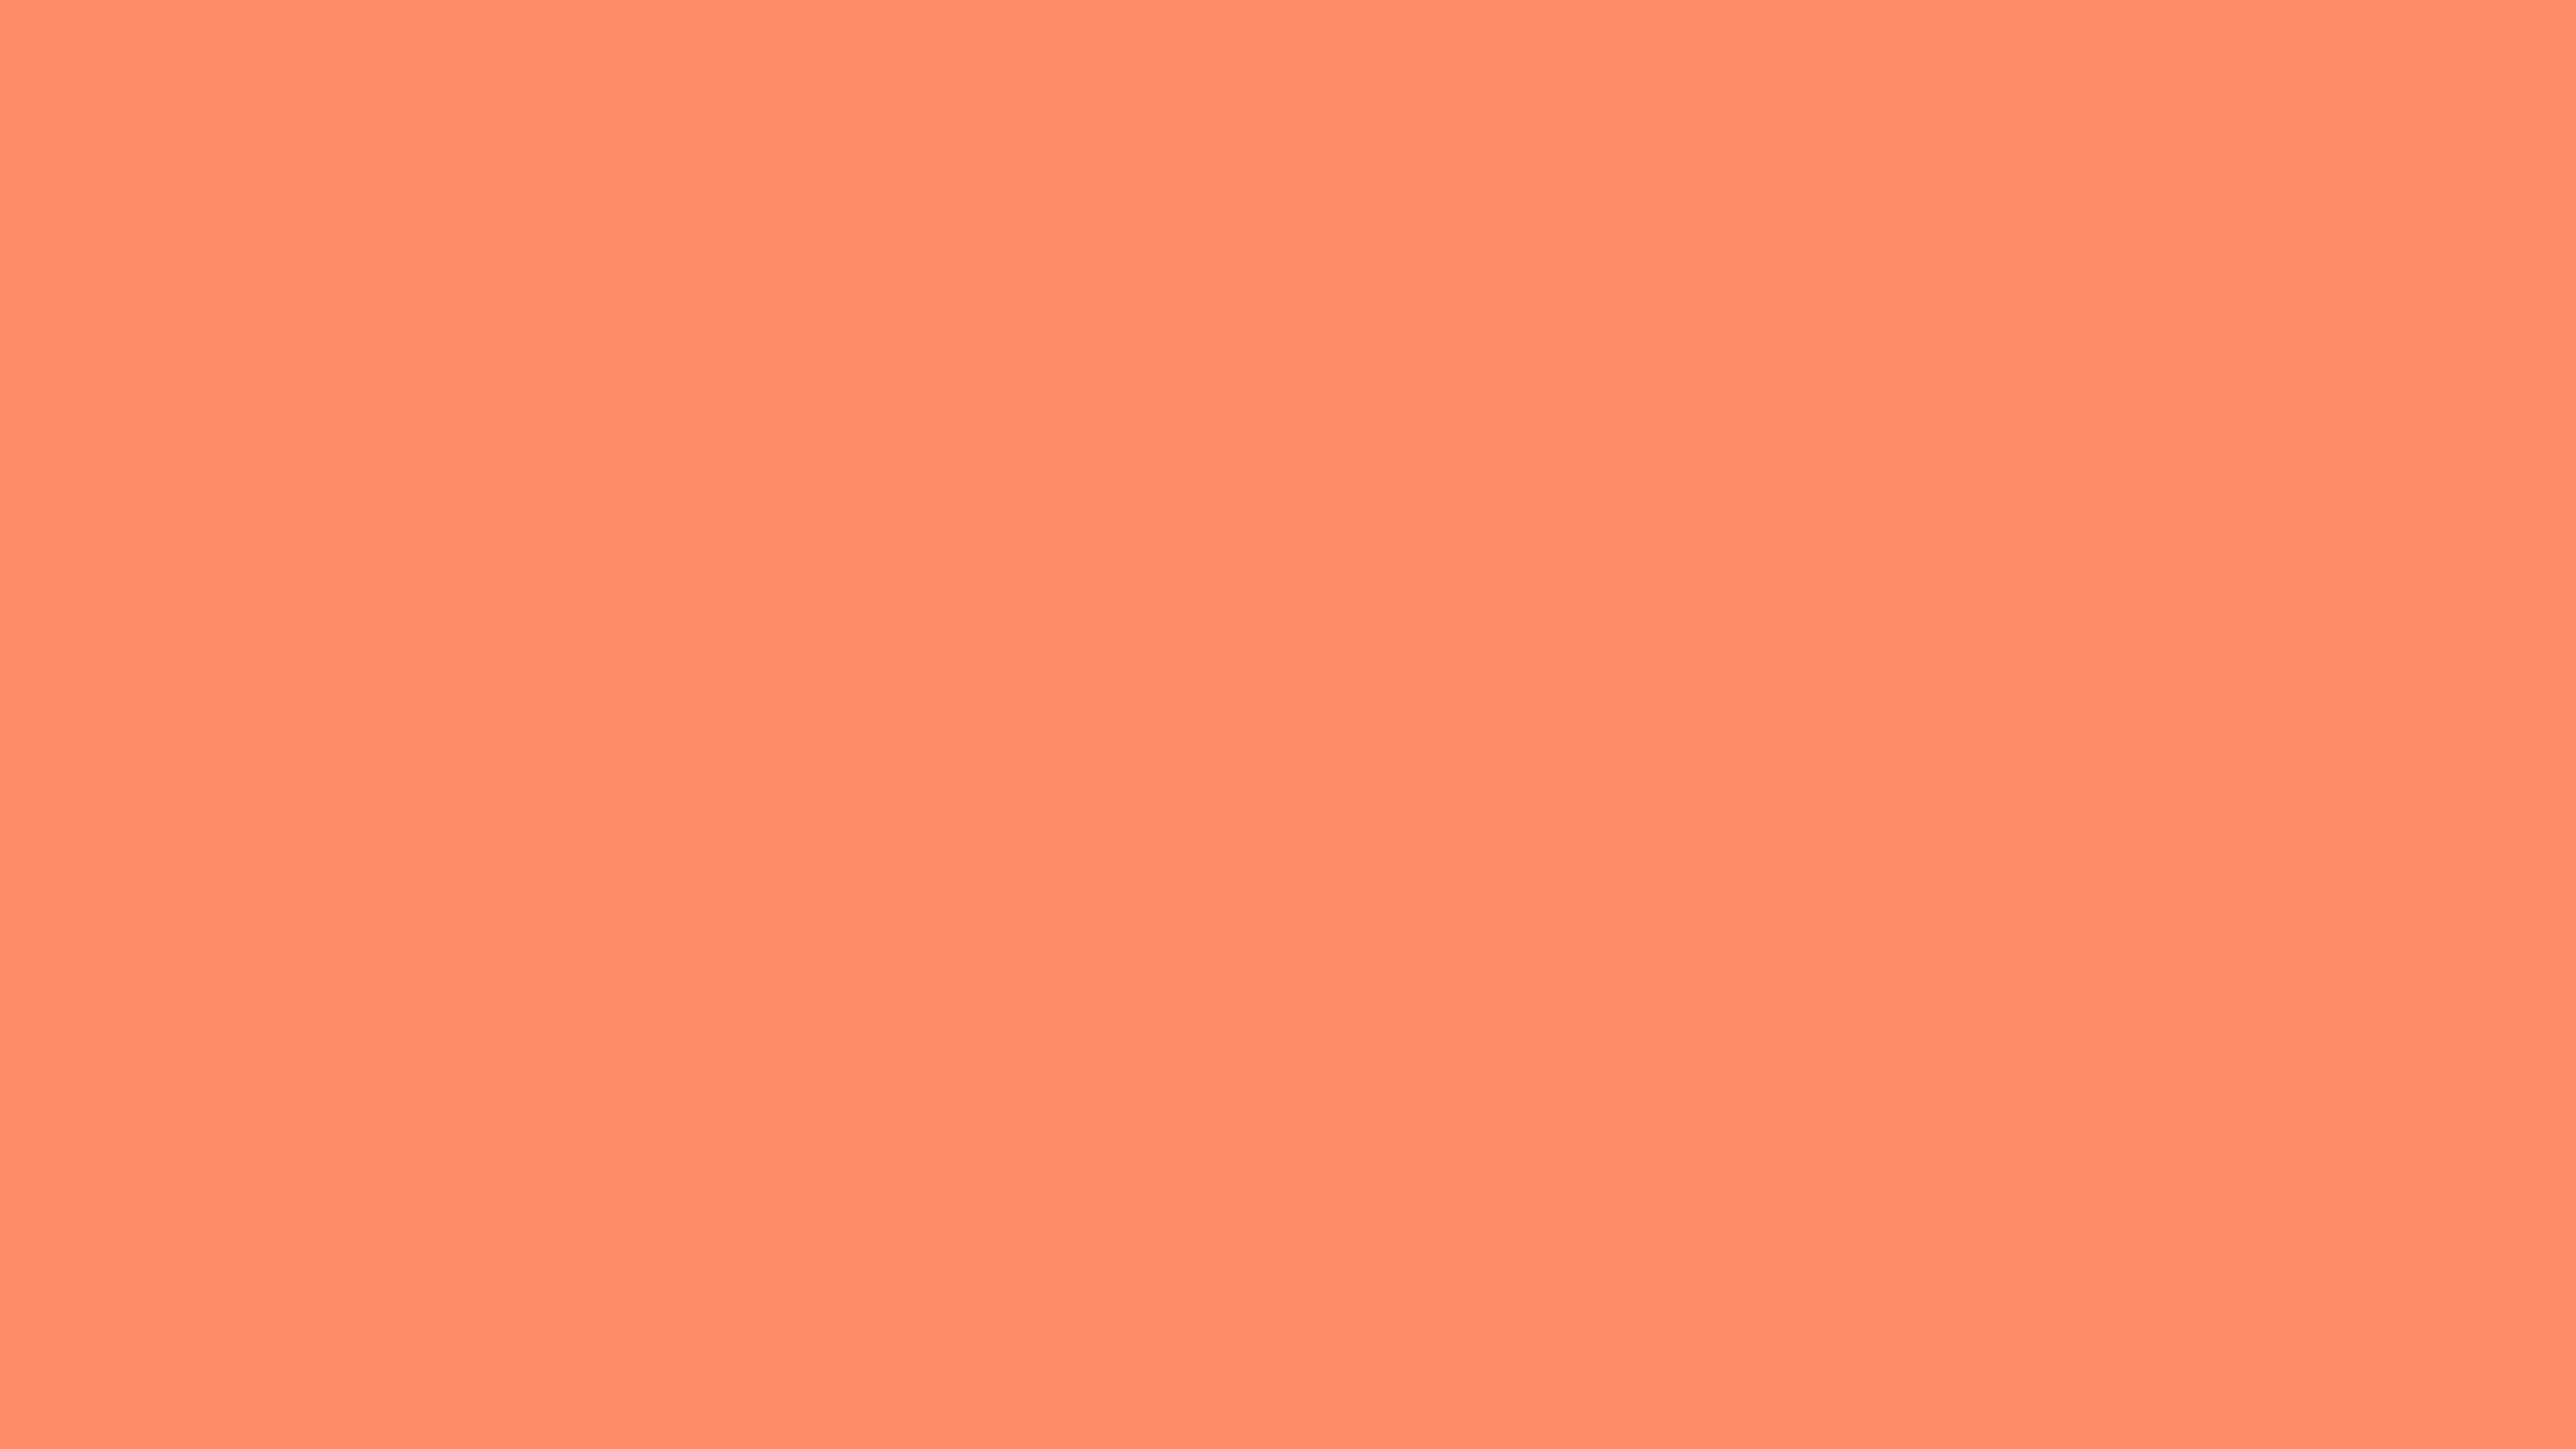 3840x2160 Salmon Solid Color Background